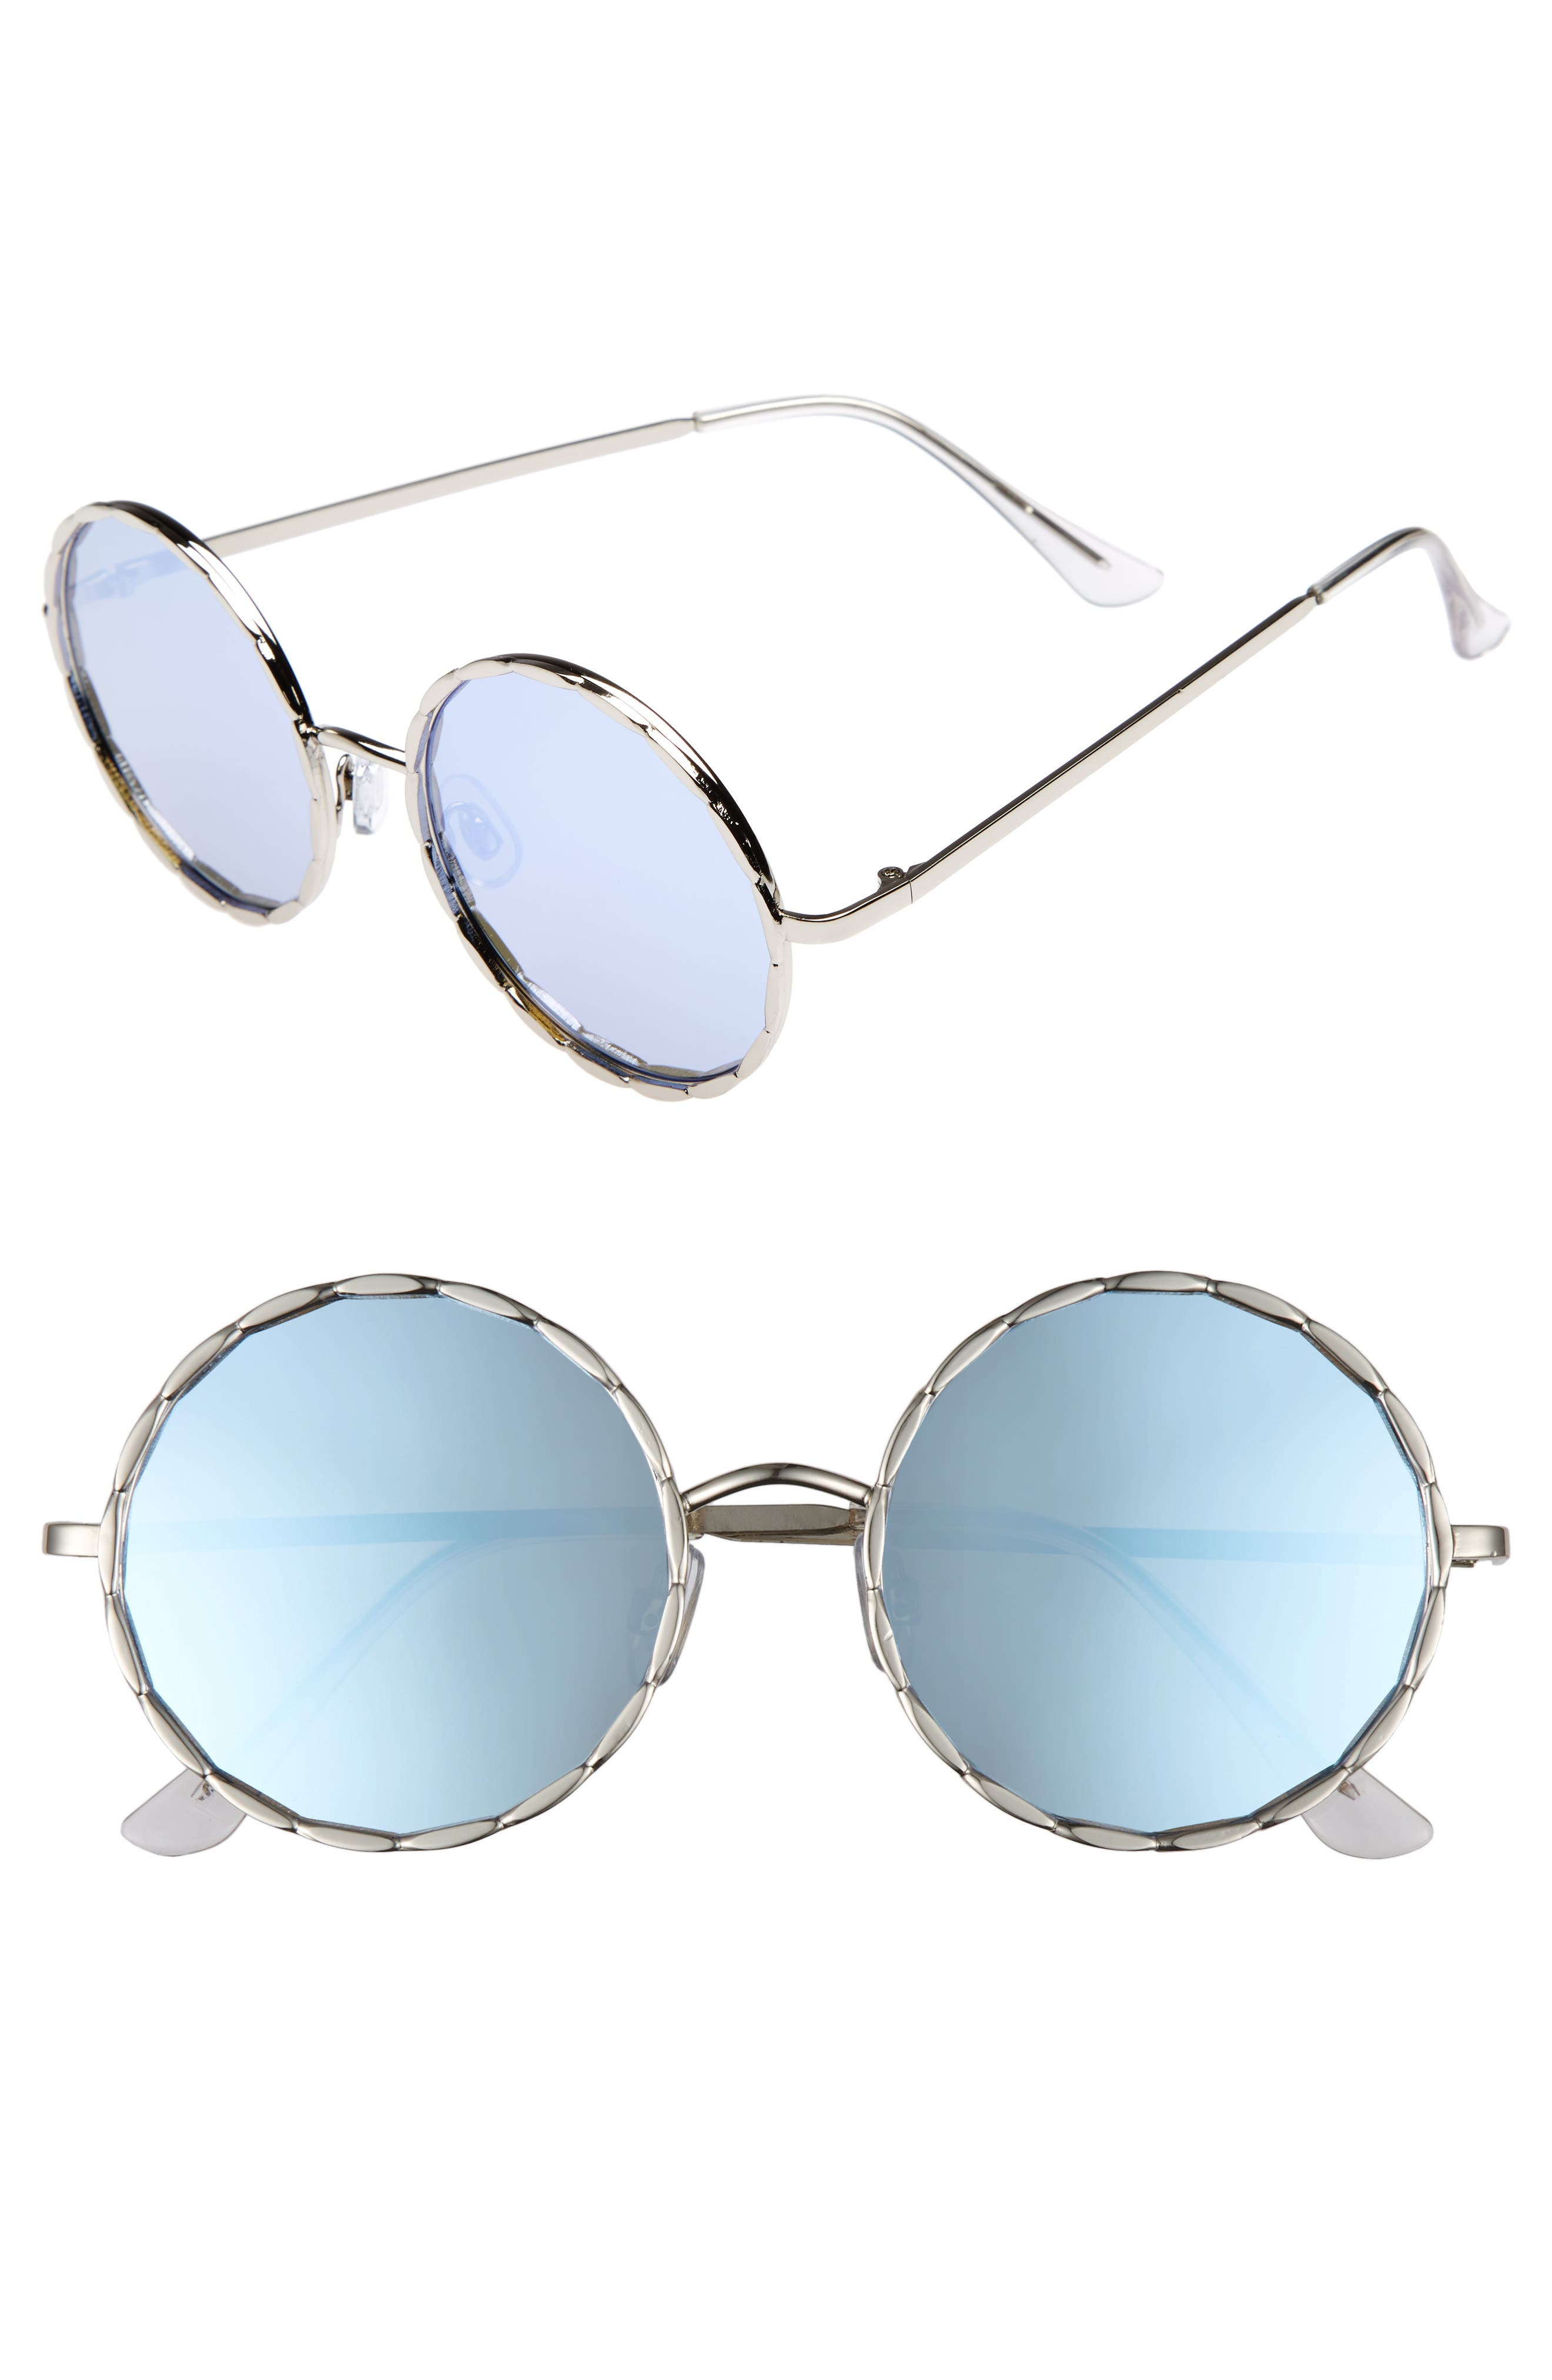 58mm Textured Round Sunglasses,                         Main,                         color, 040